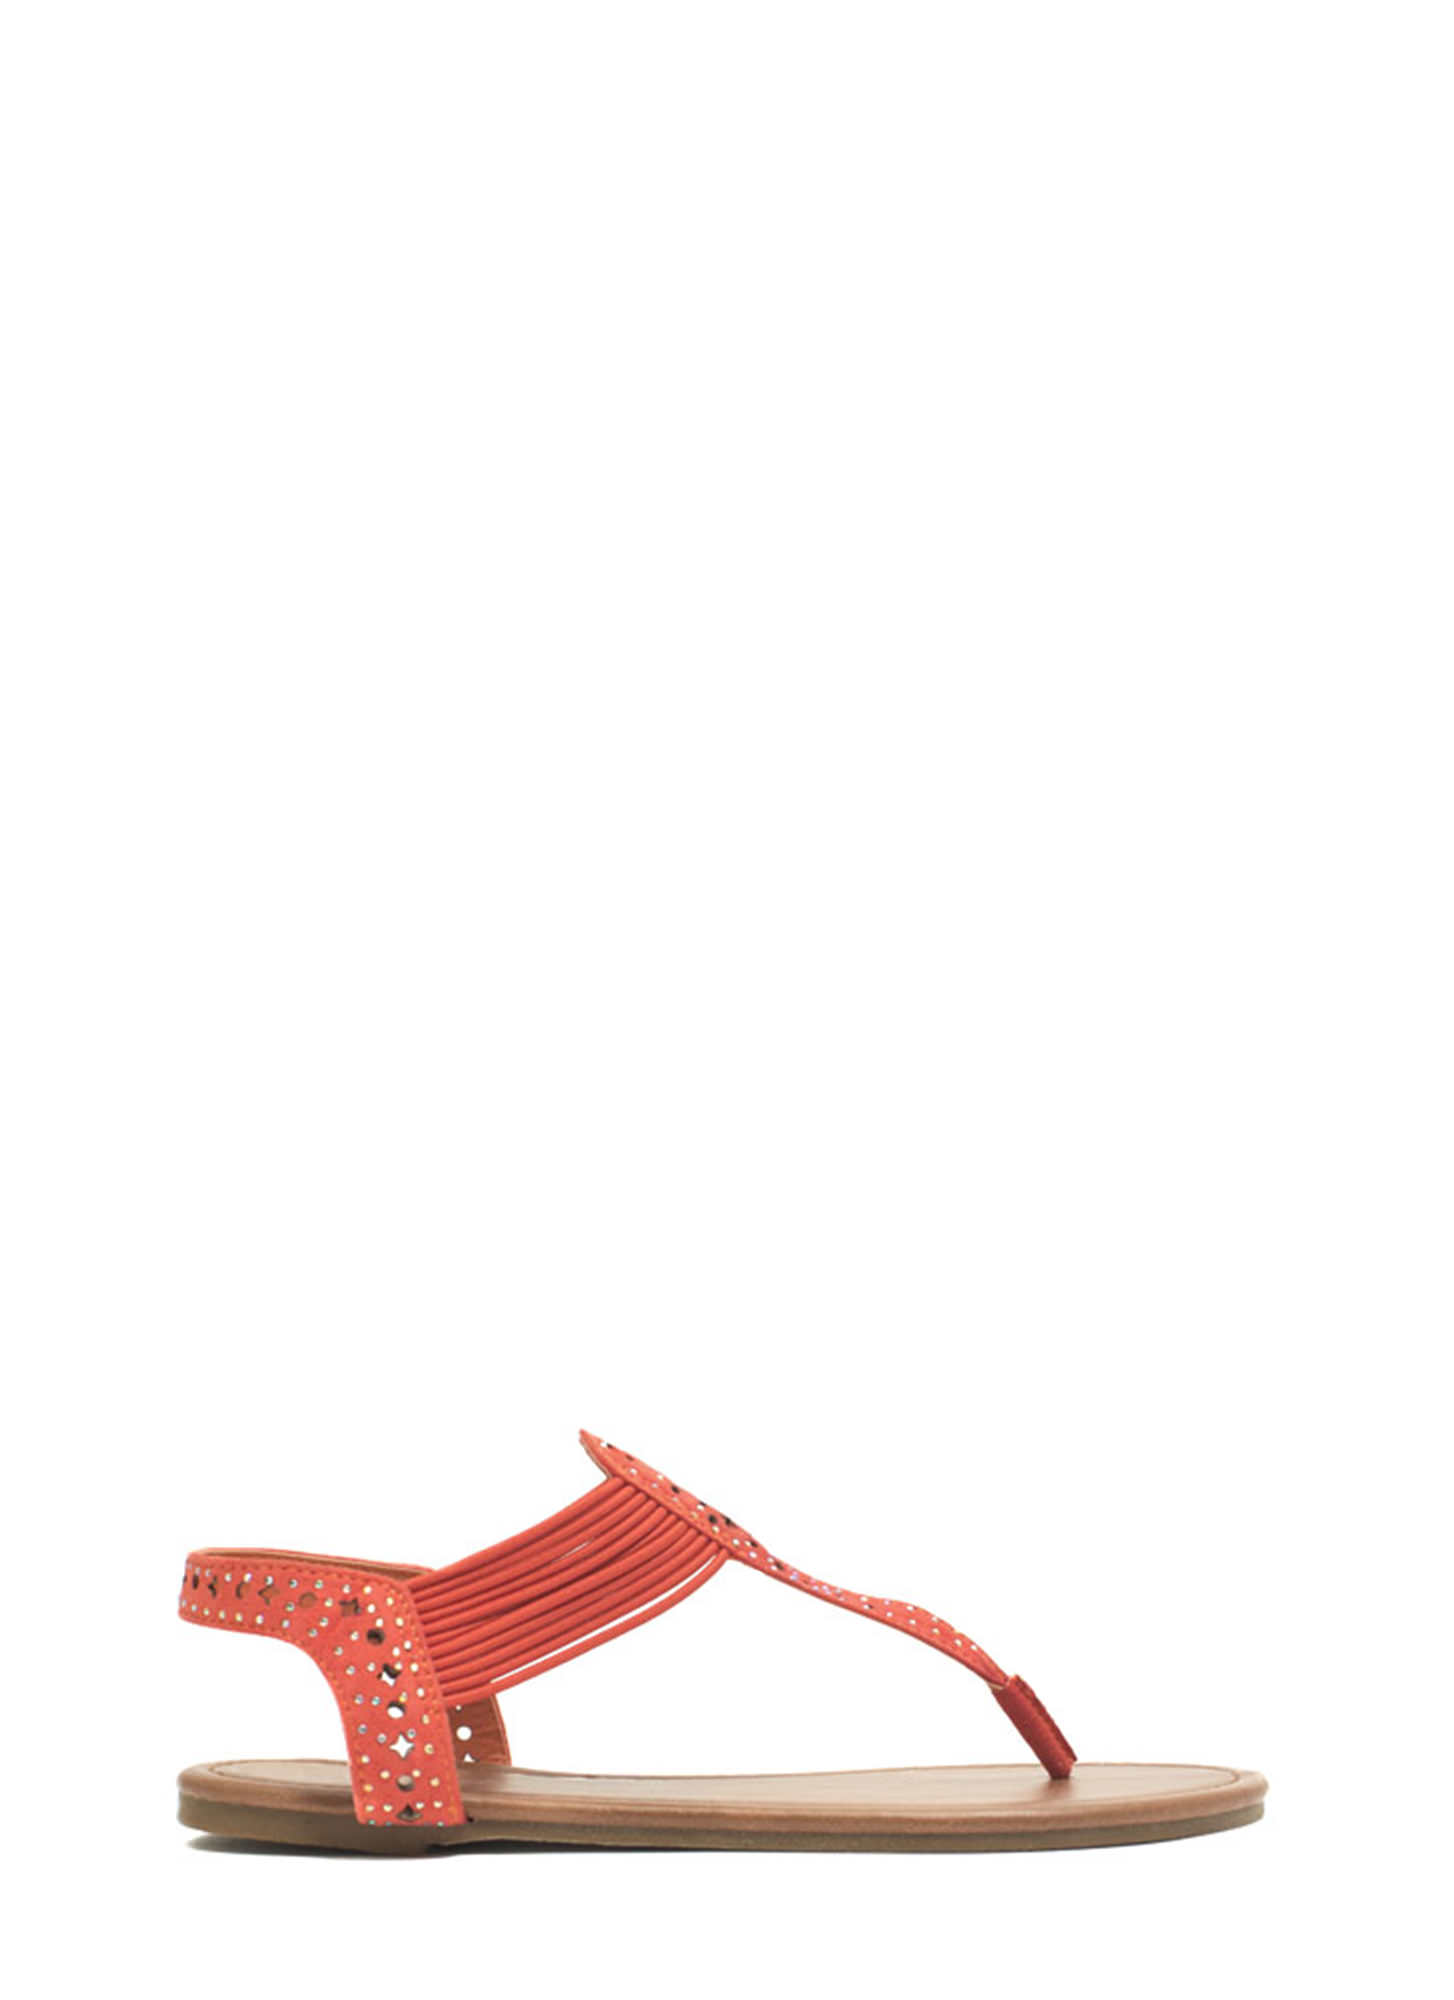 Embellished Cord T-Strap Sandals ORANGE